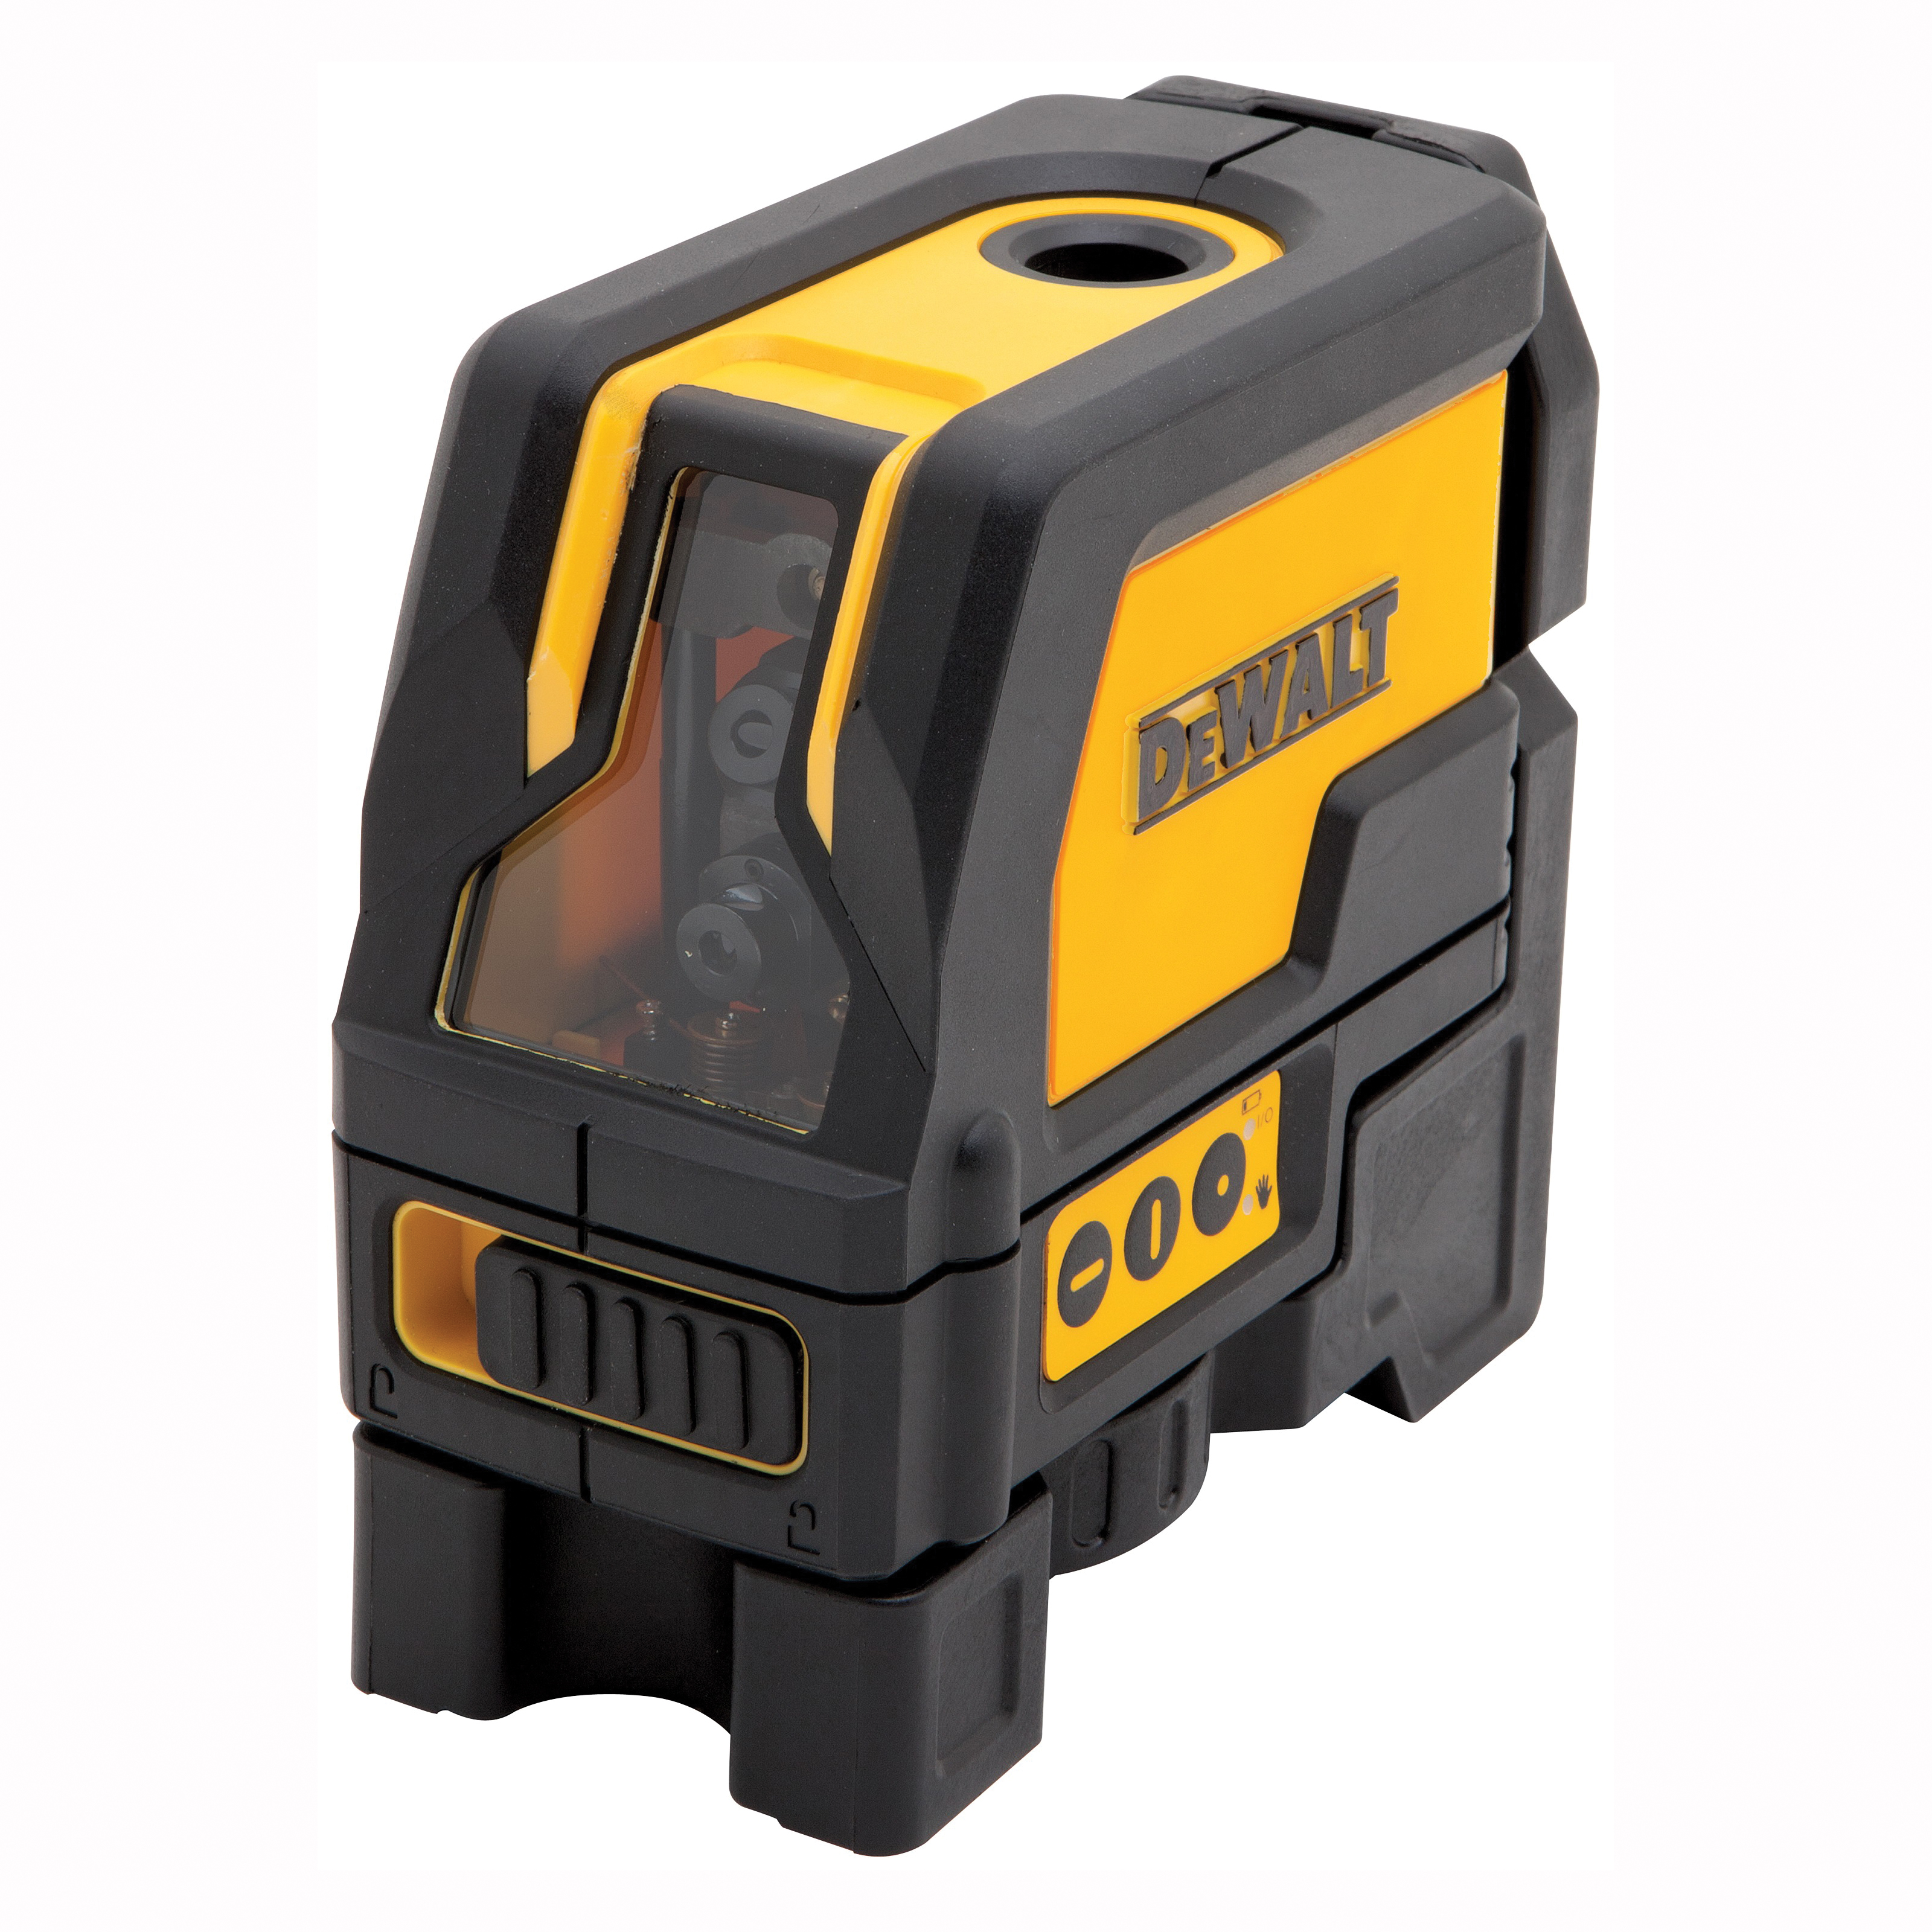 Picture of DeWALT DW0822 Laser, 50 ft, +/-3/16 in at 50 ft Accuracy, 2 -Beam, Red Laser